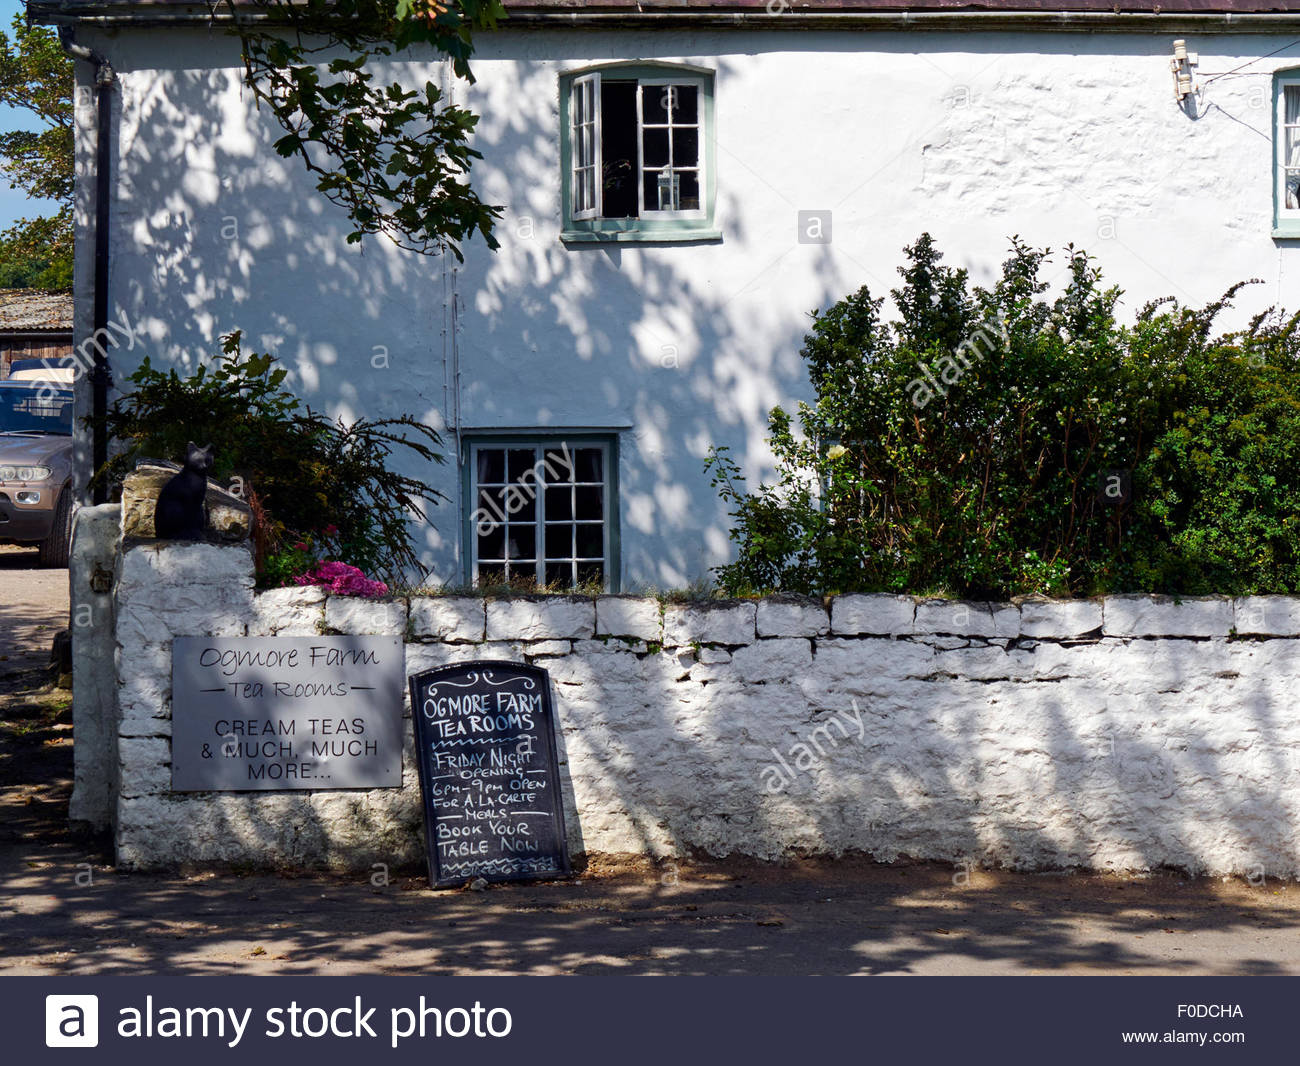 Ogmore farm tea rooms by ogmore castle in south wales uk Stock Photo